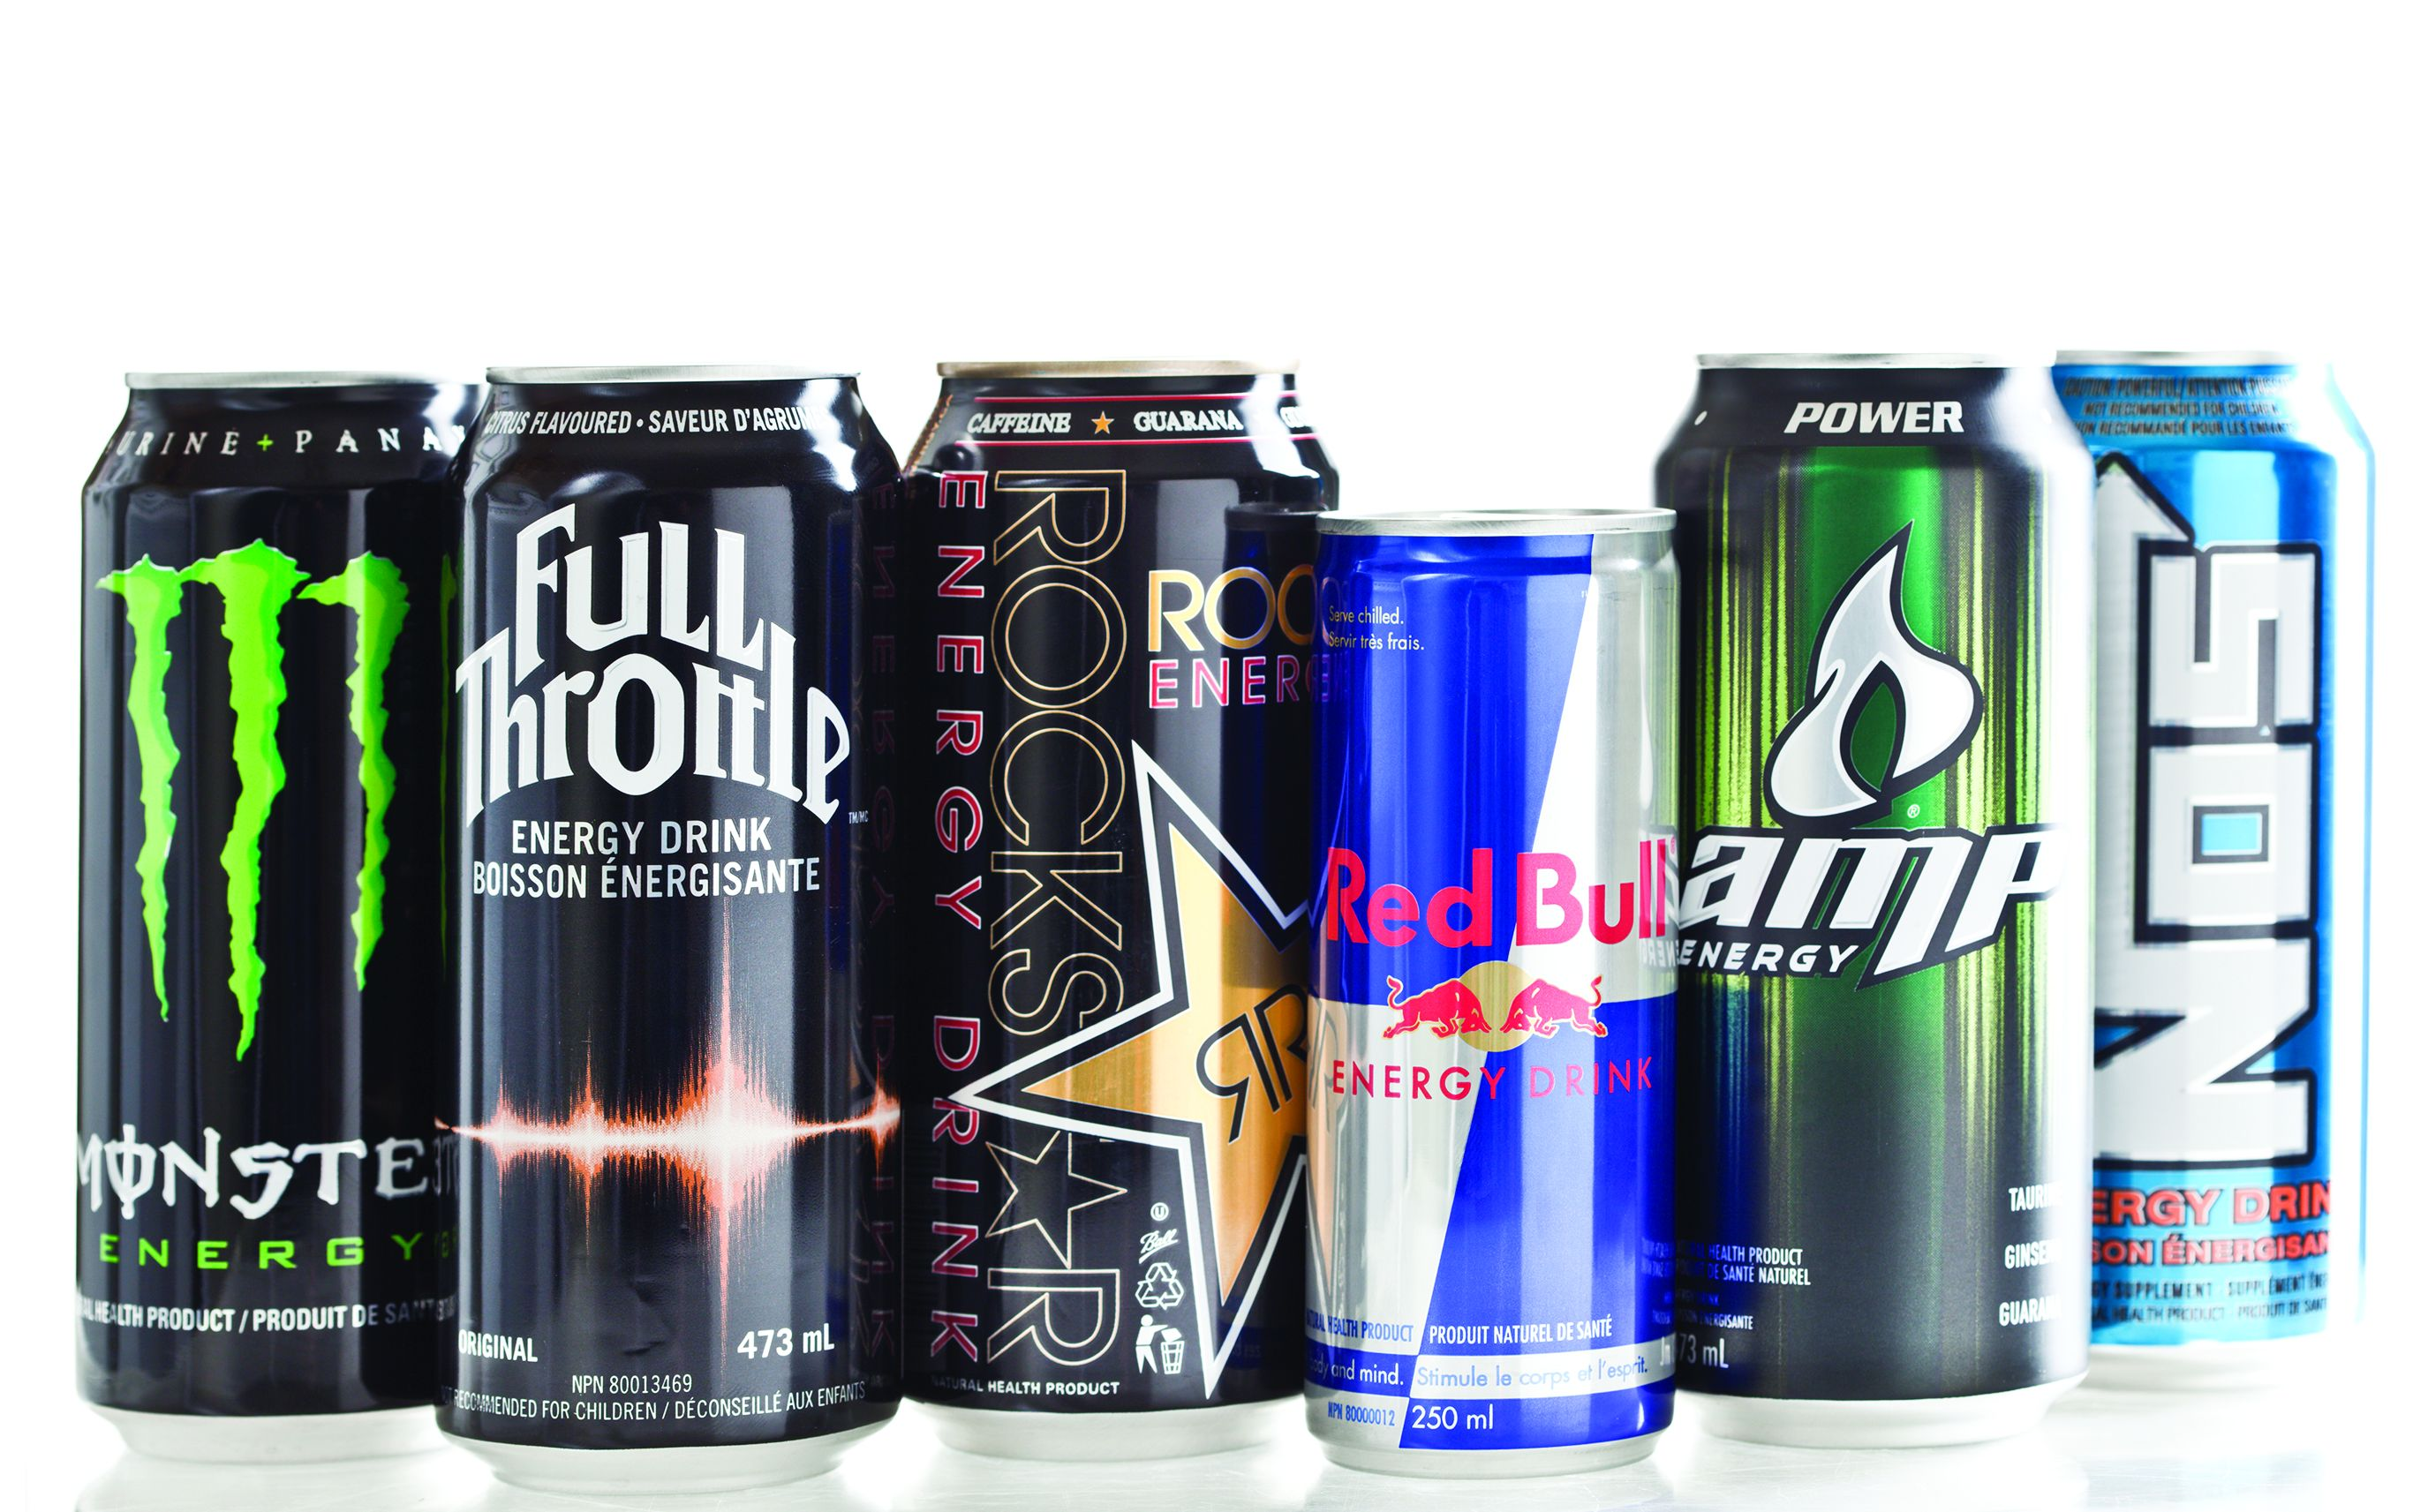 Drink Energy Drinks Responsibly